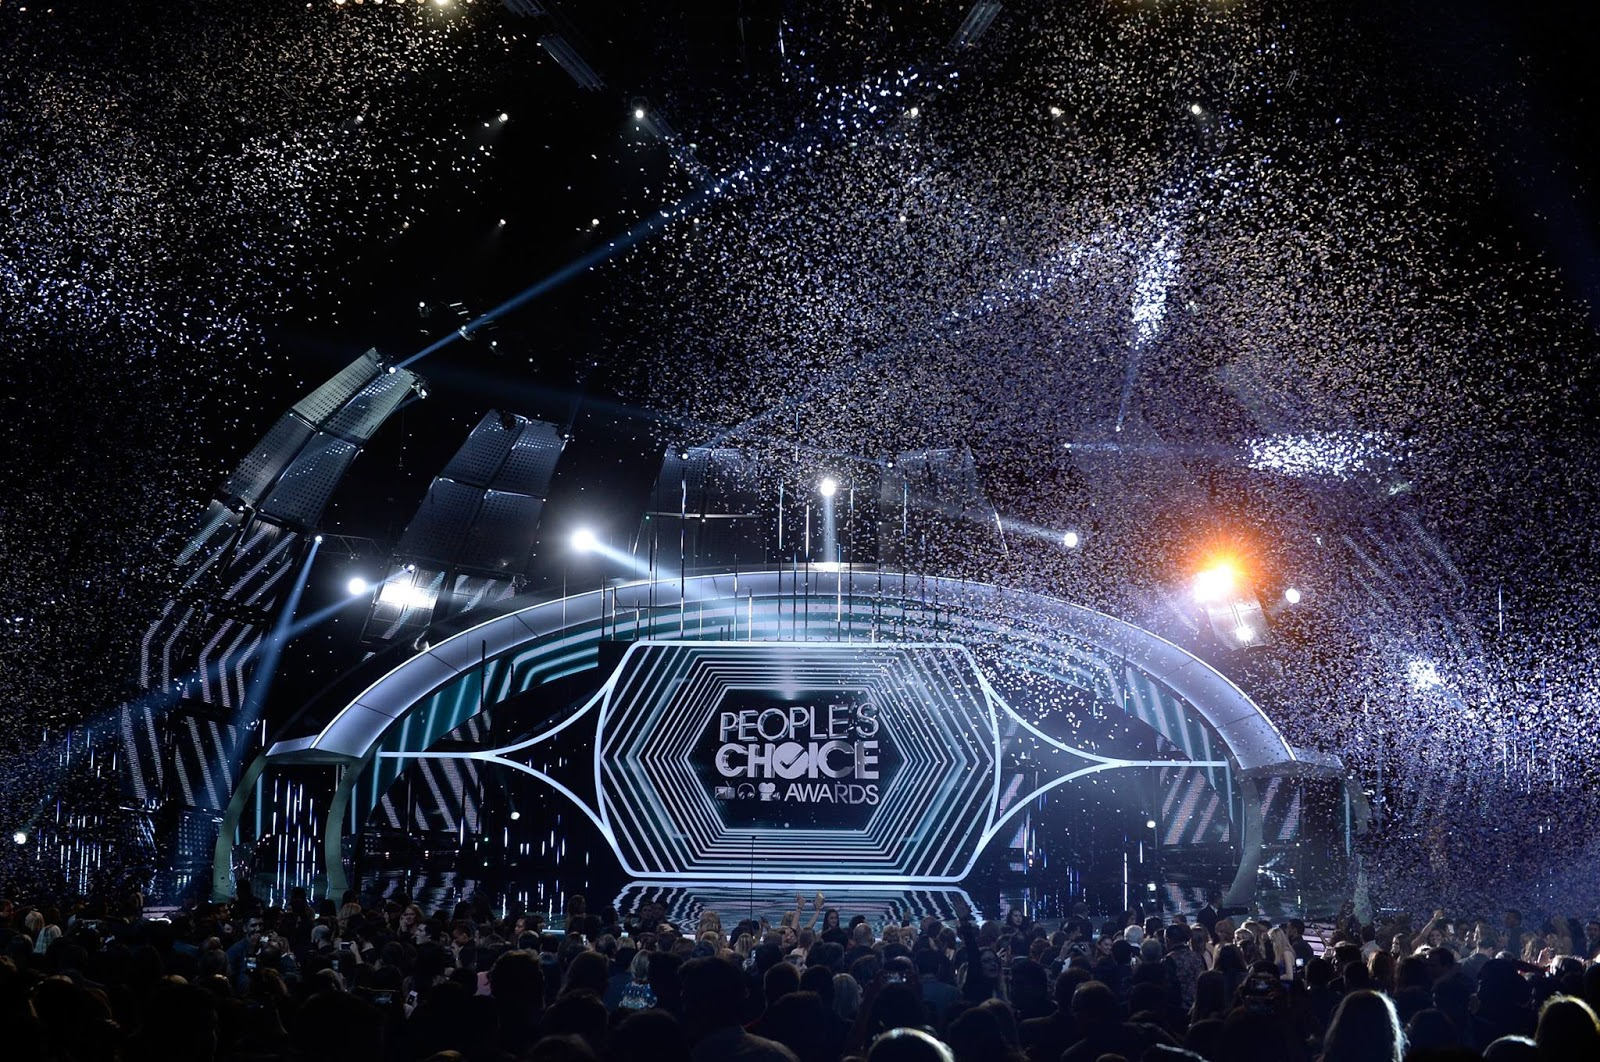 Malaysians can now vote for People's Choice Awards